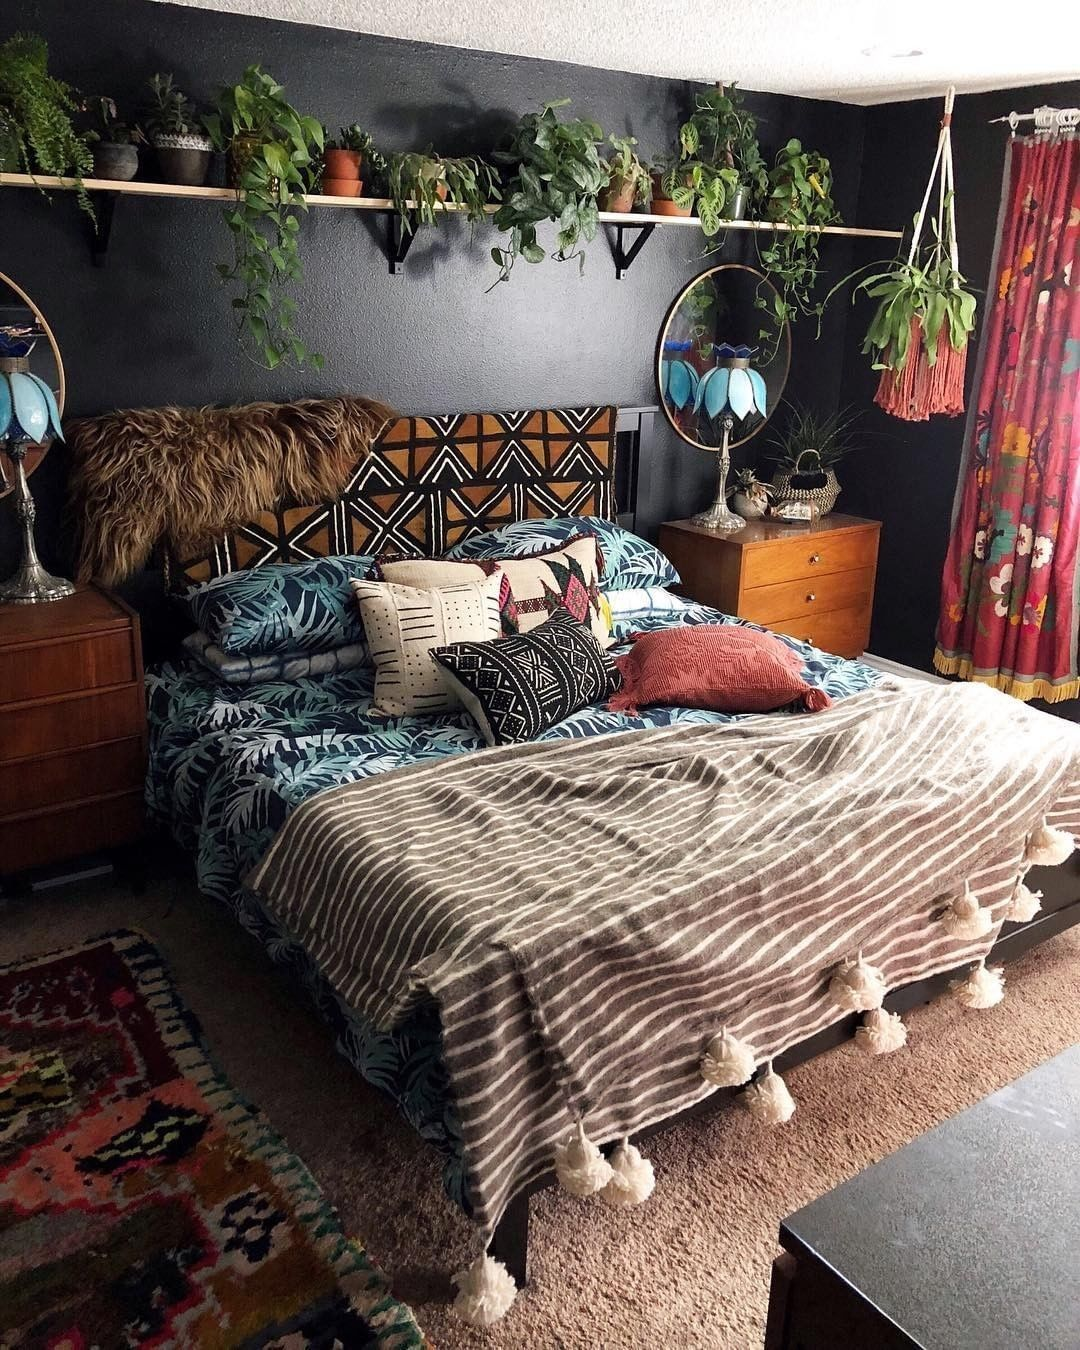 50 Sleigh Bed Inspirations For A Cozy Modern Bedroom: 50+ Creative Hanging Plants Ideas For Indoor In 2020